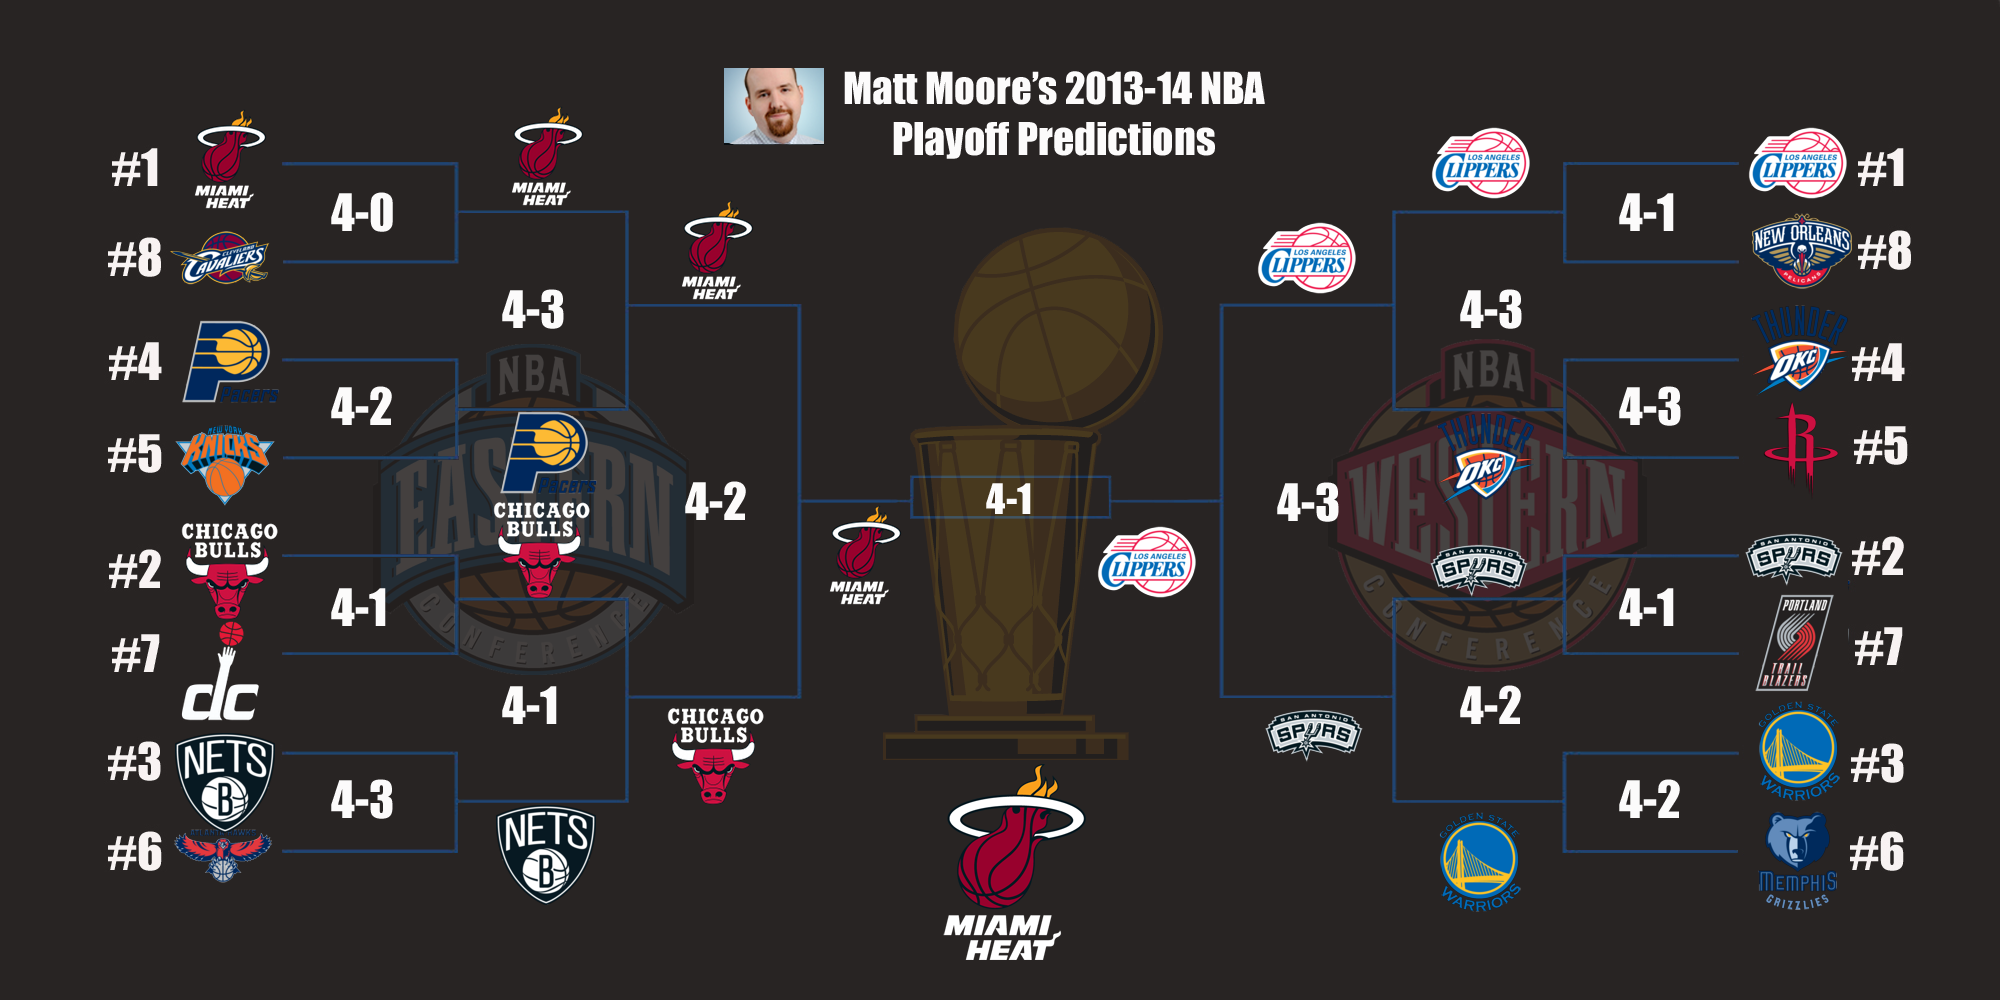 Nba Teams Map 2014 Topics: season previews, nba